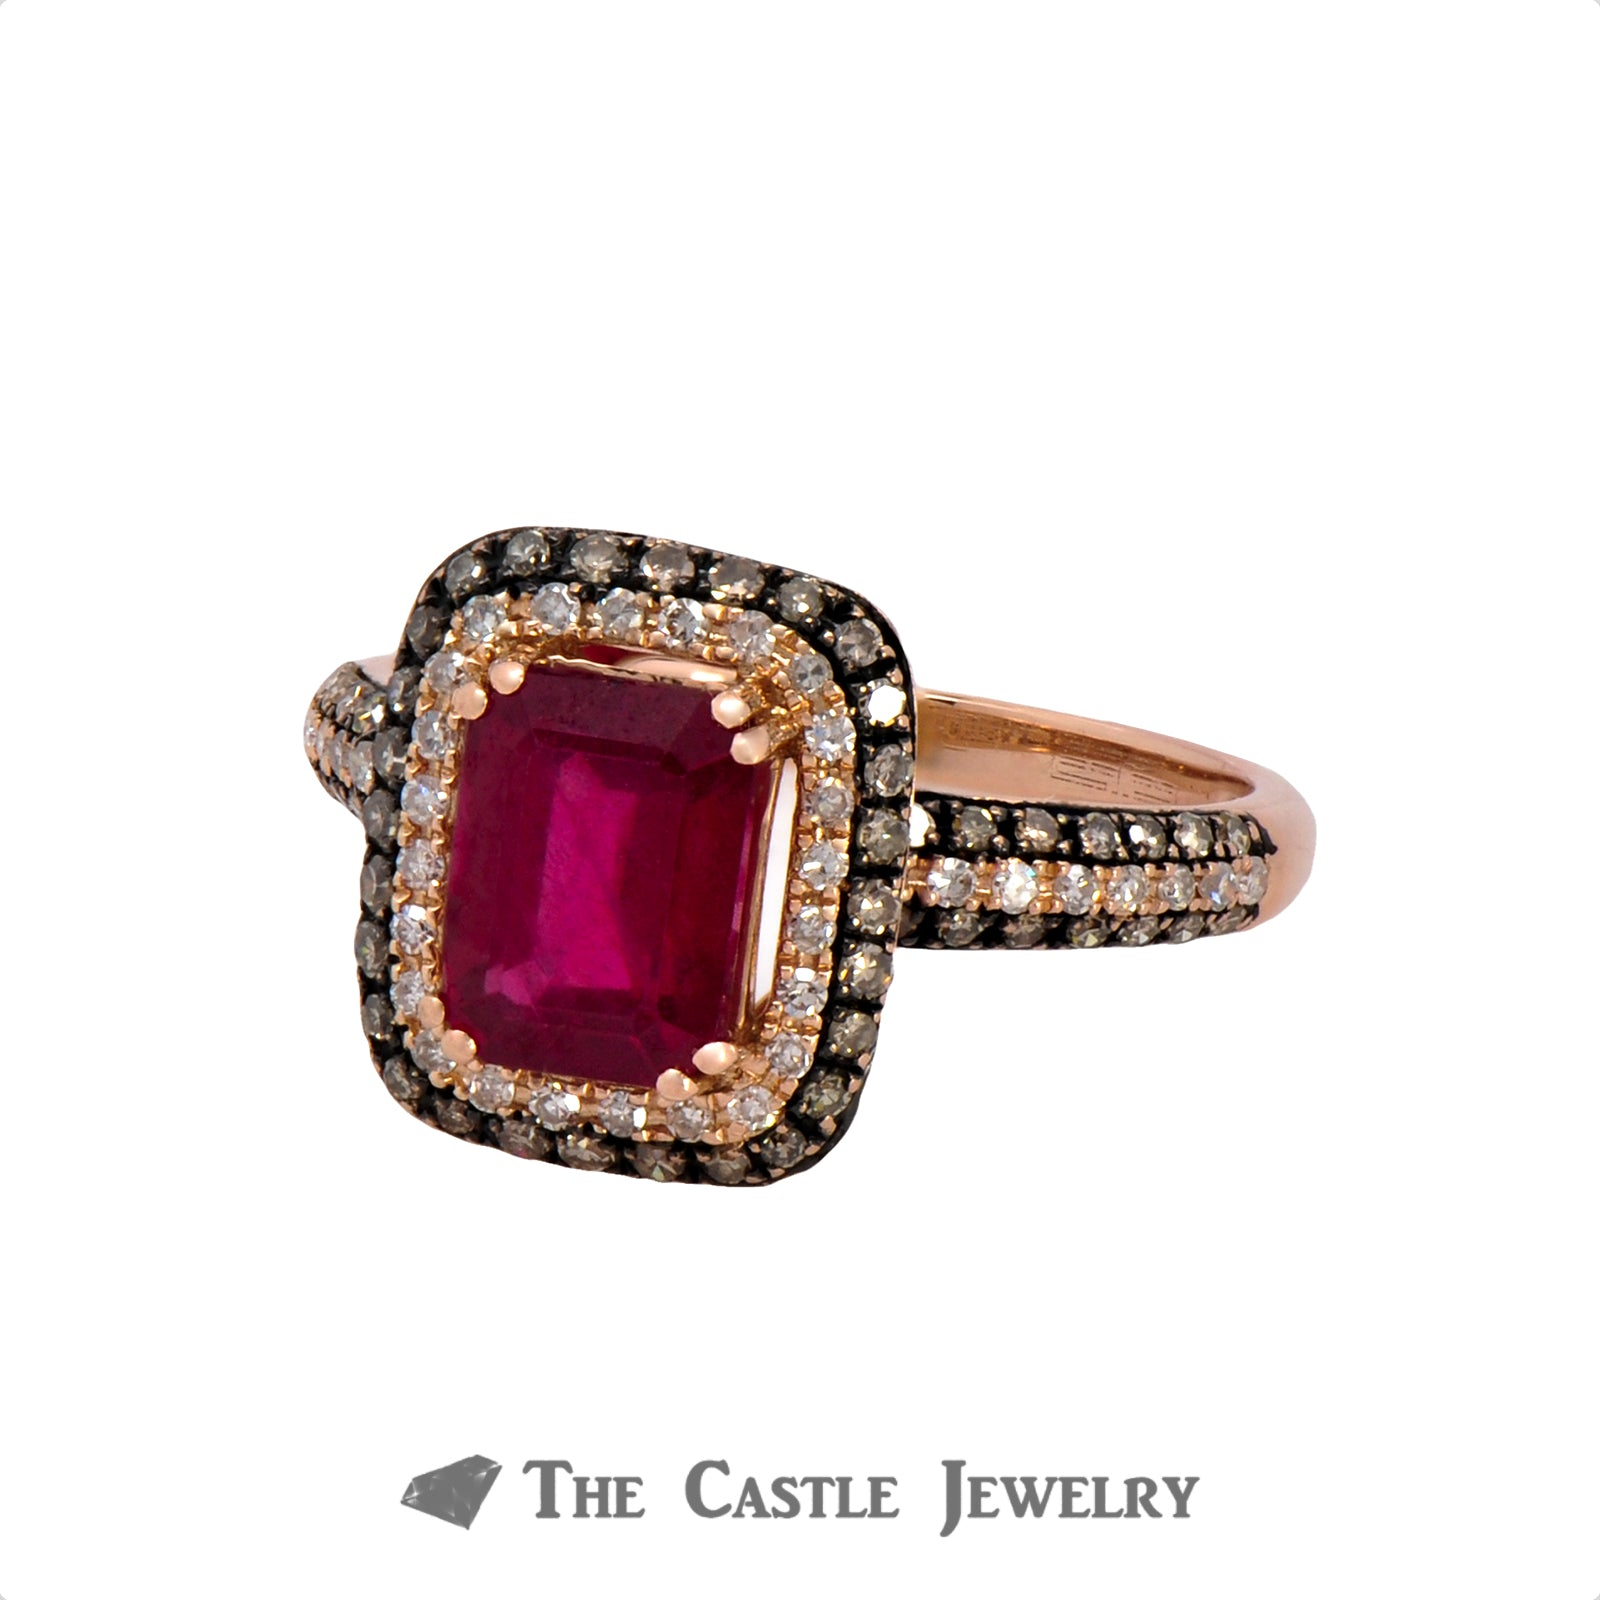 Effy Emerald Cut Ruby Ring with White and Chocolate Diamonds in 14k Rose Gold-2